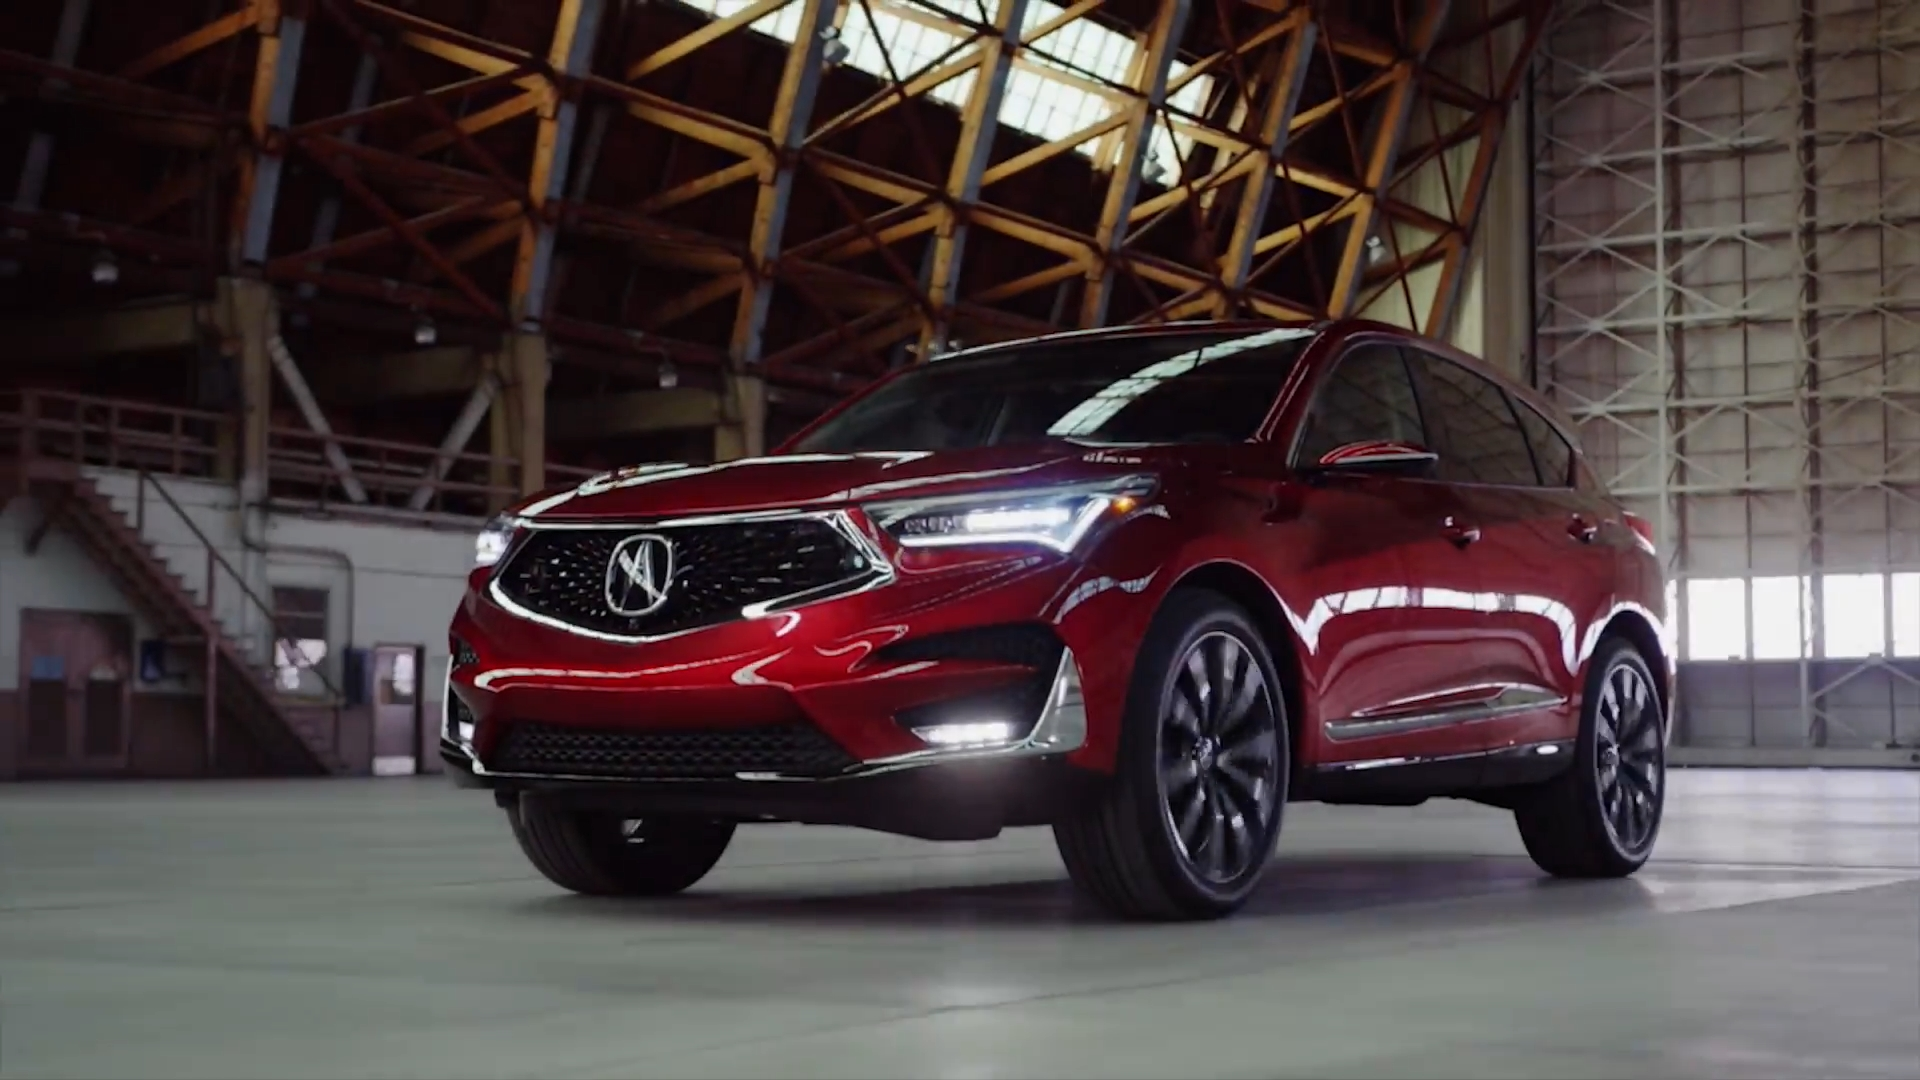 2019 Acura RDX Prototype Driving Video